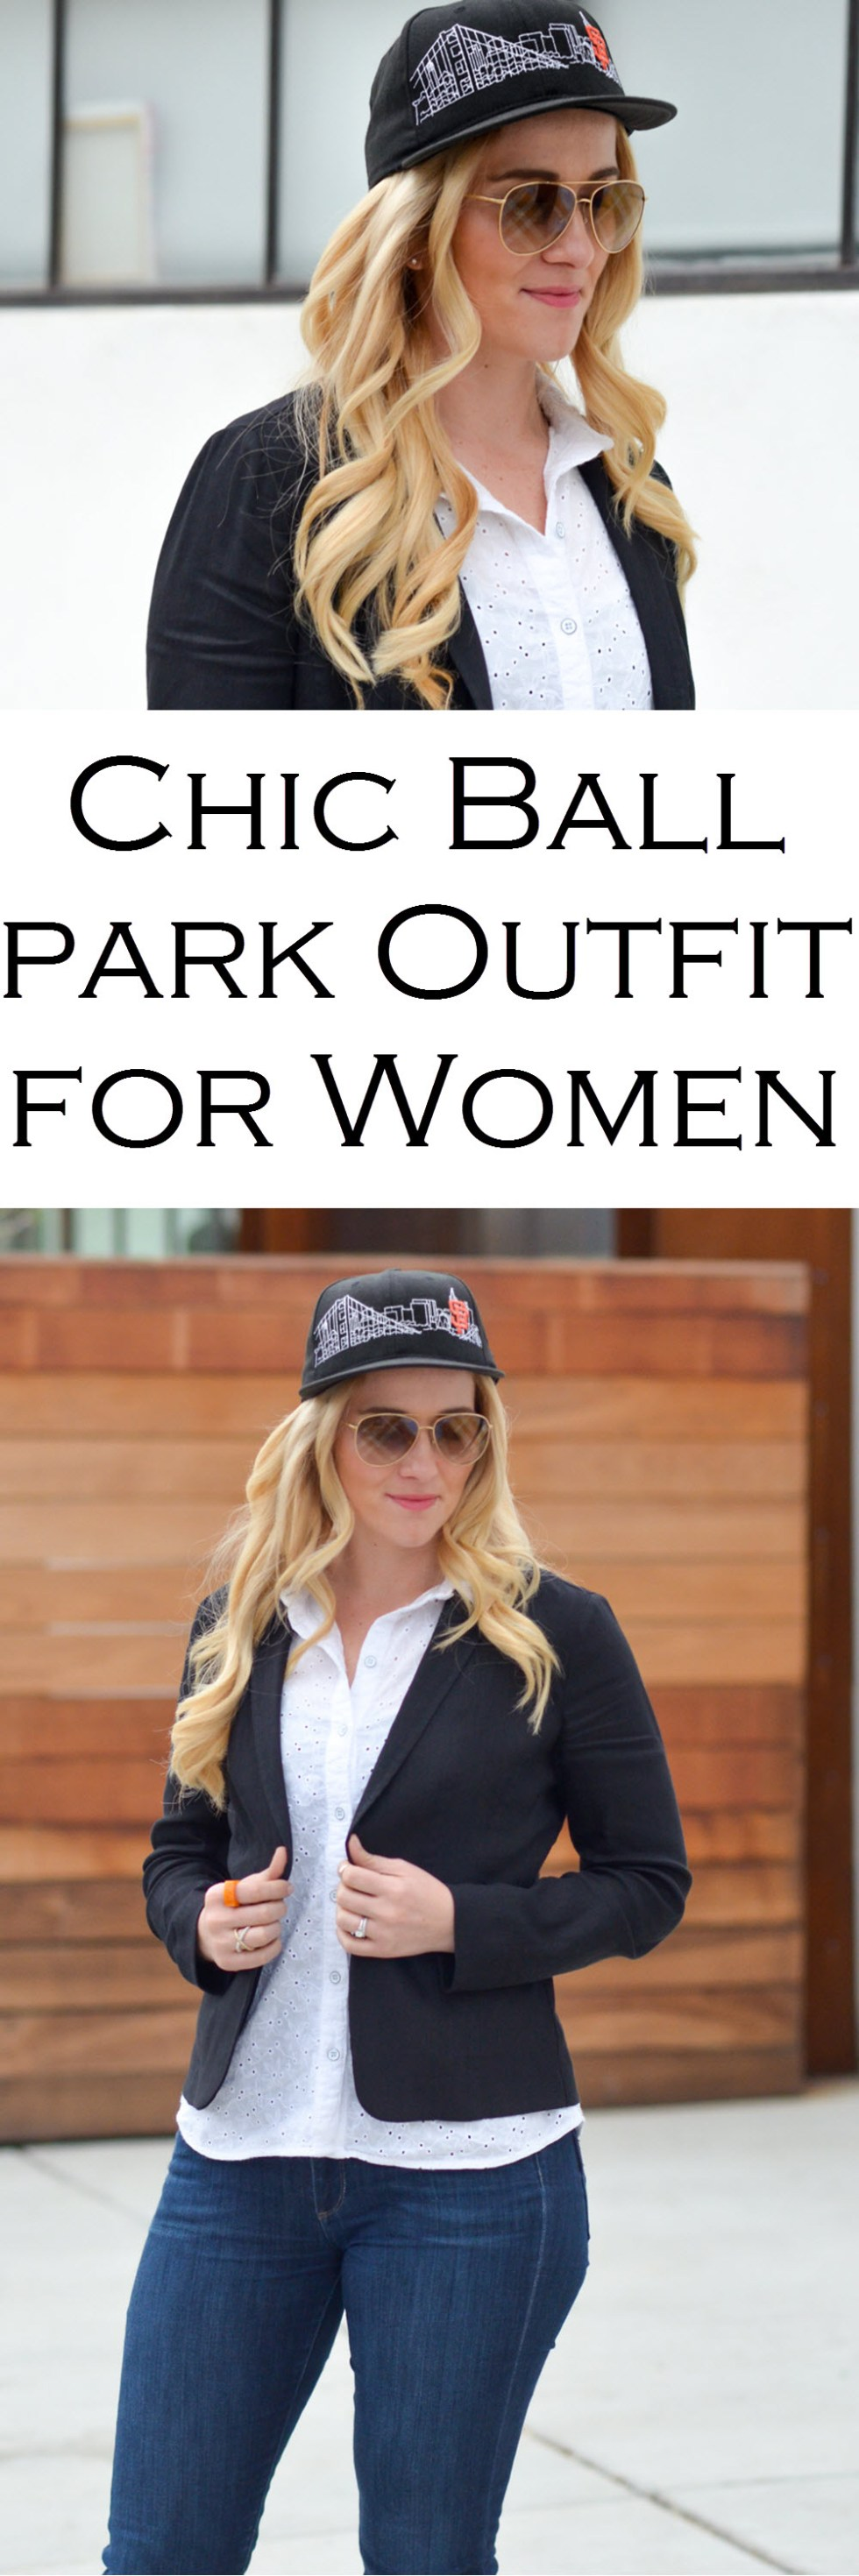 Chic Baseball Game Outfit for Women to wear to the Ballpark - SF Giants Skyline Hat